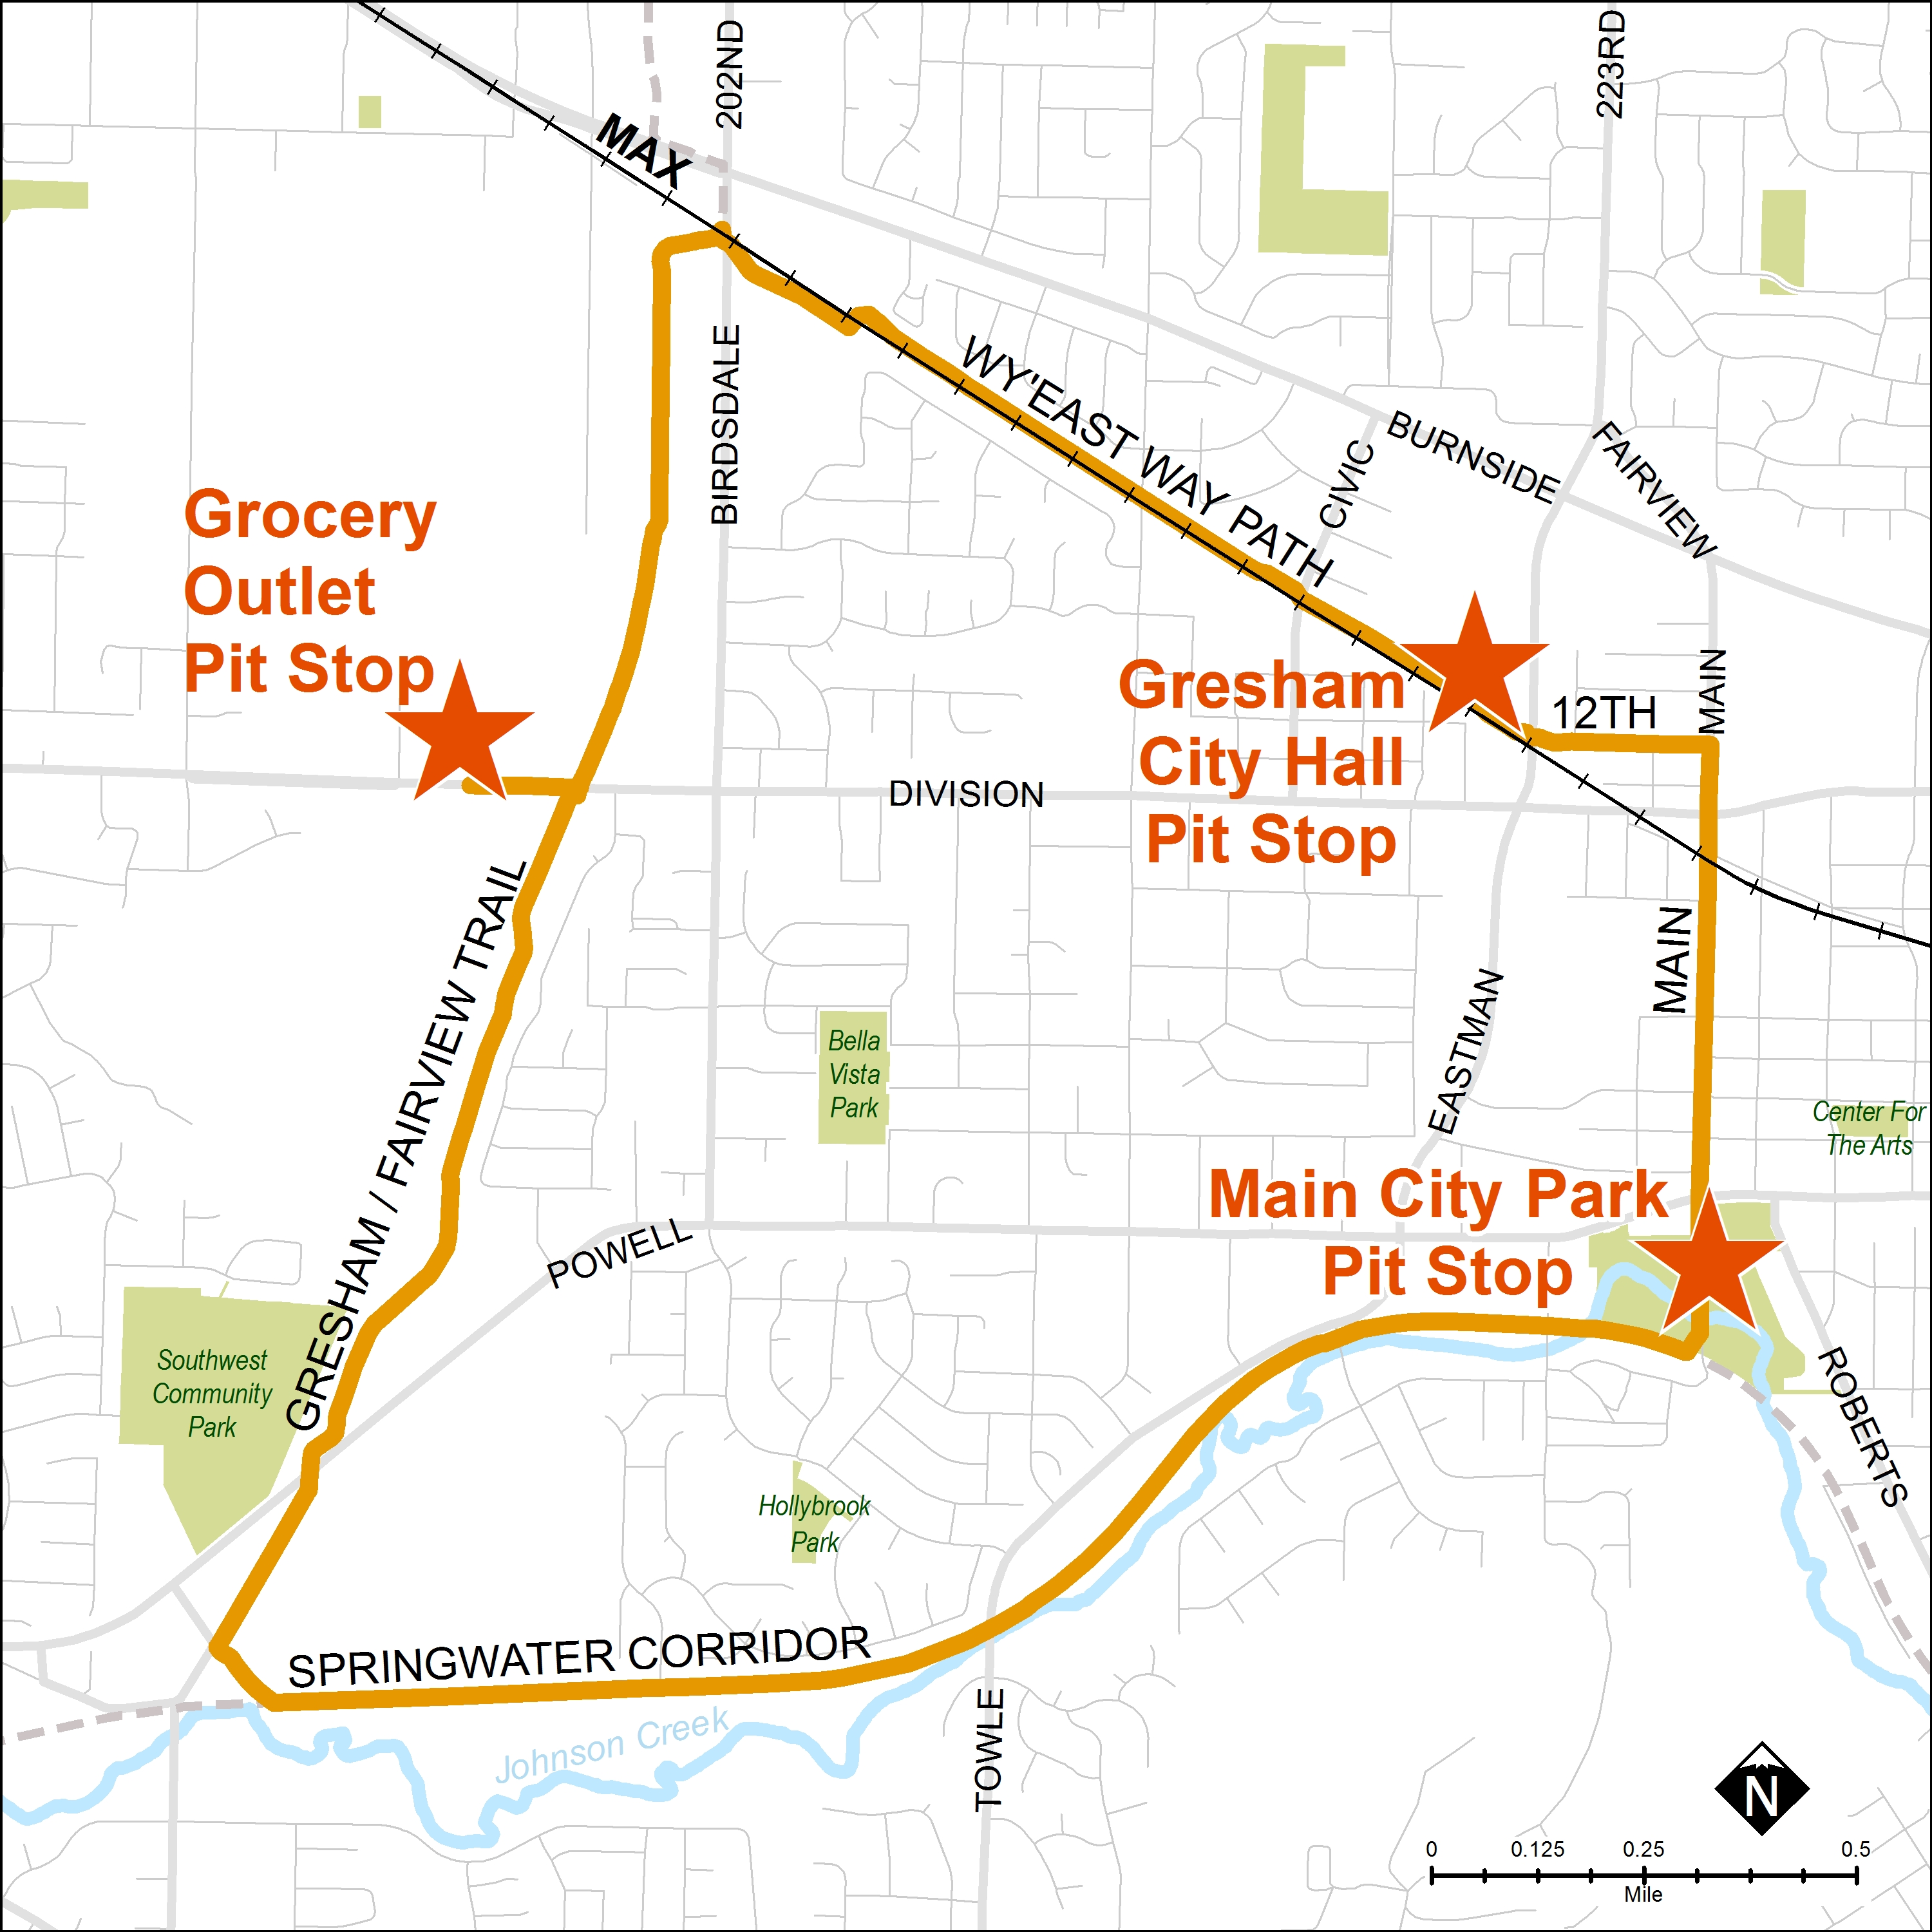 SundayParkway Gresham Area Chamber of Commerce and Visitors Center OR